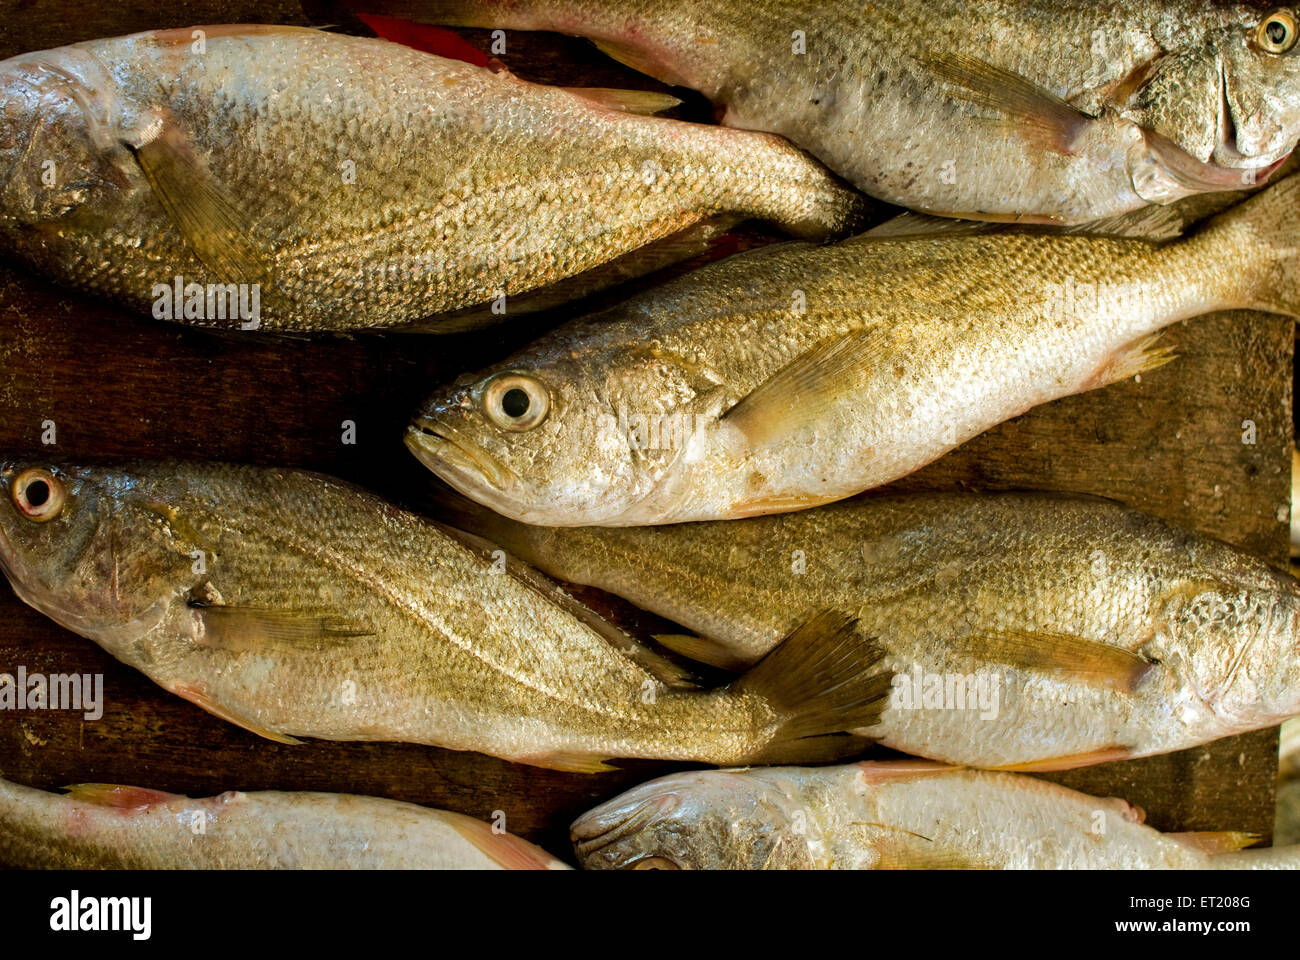 Bhangdha king fish for sale at fish market goa india for Stock fish for sale